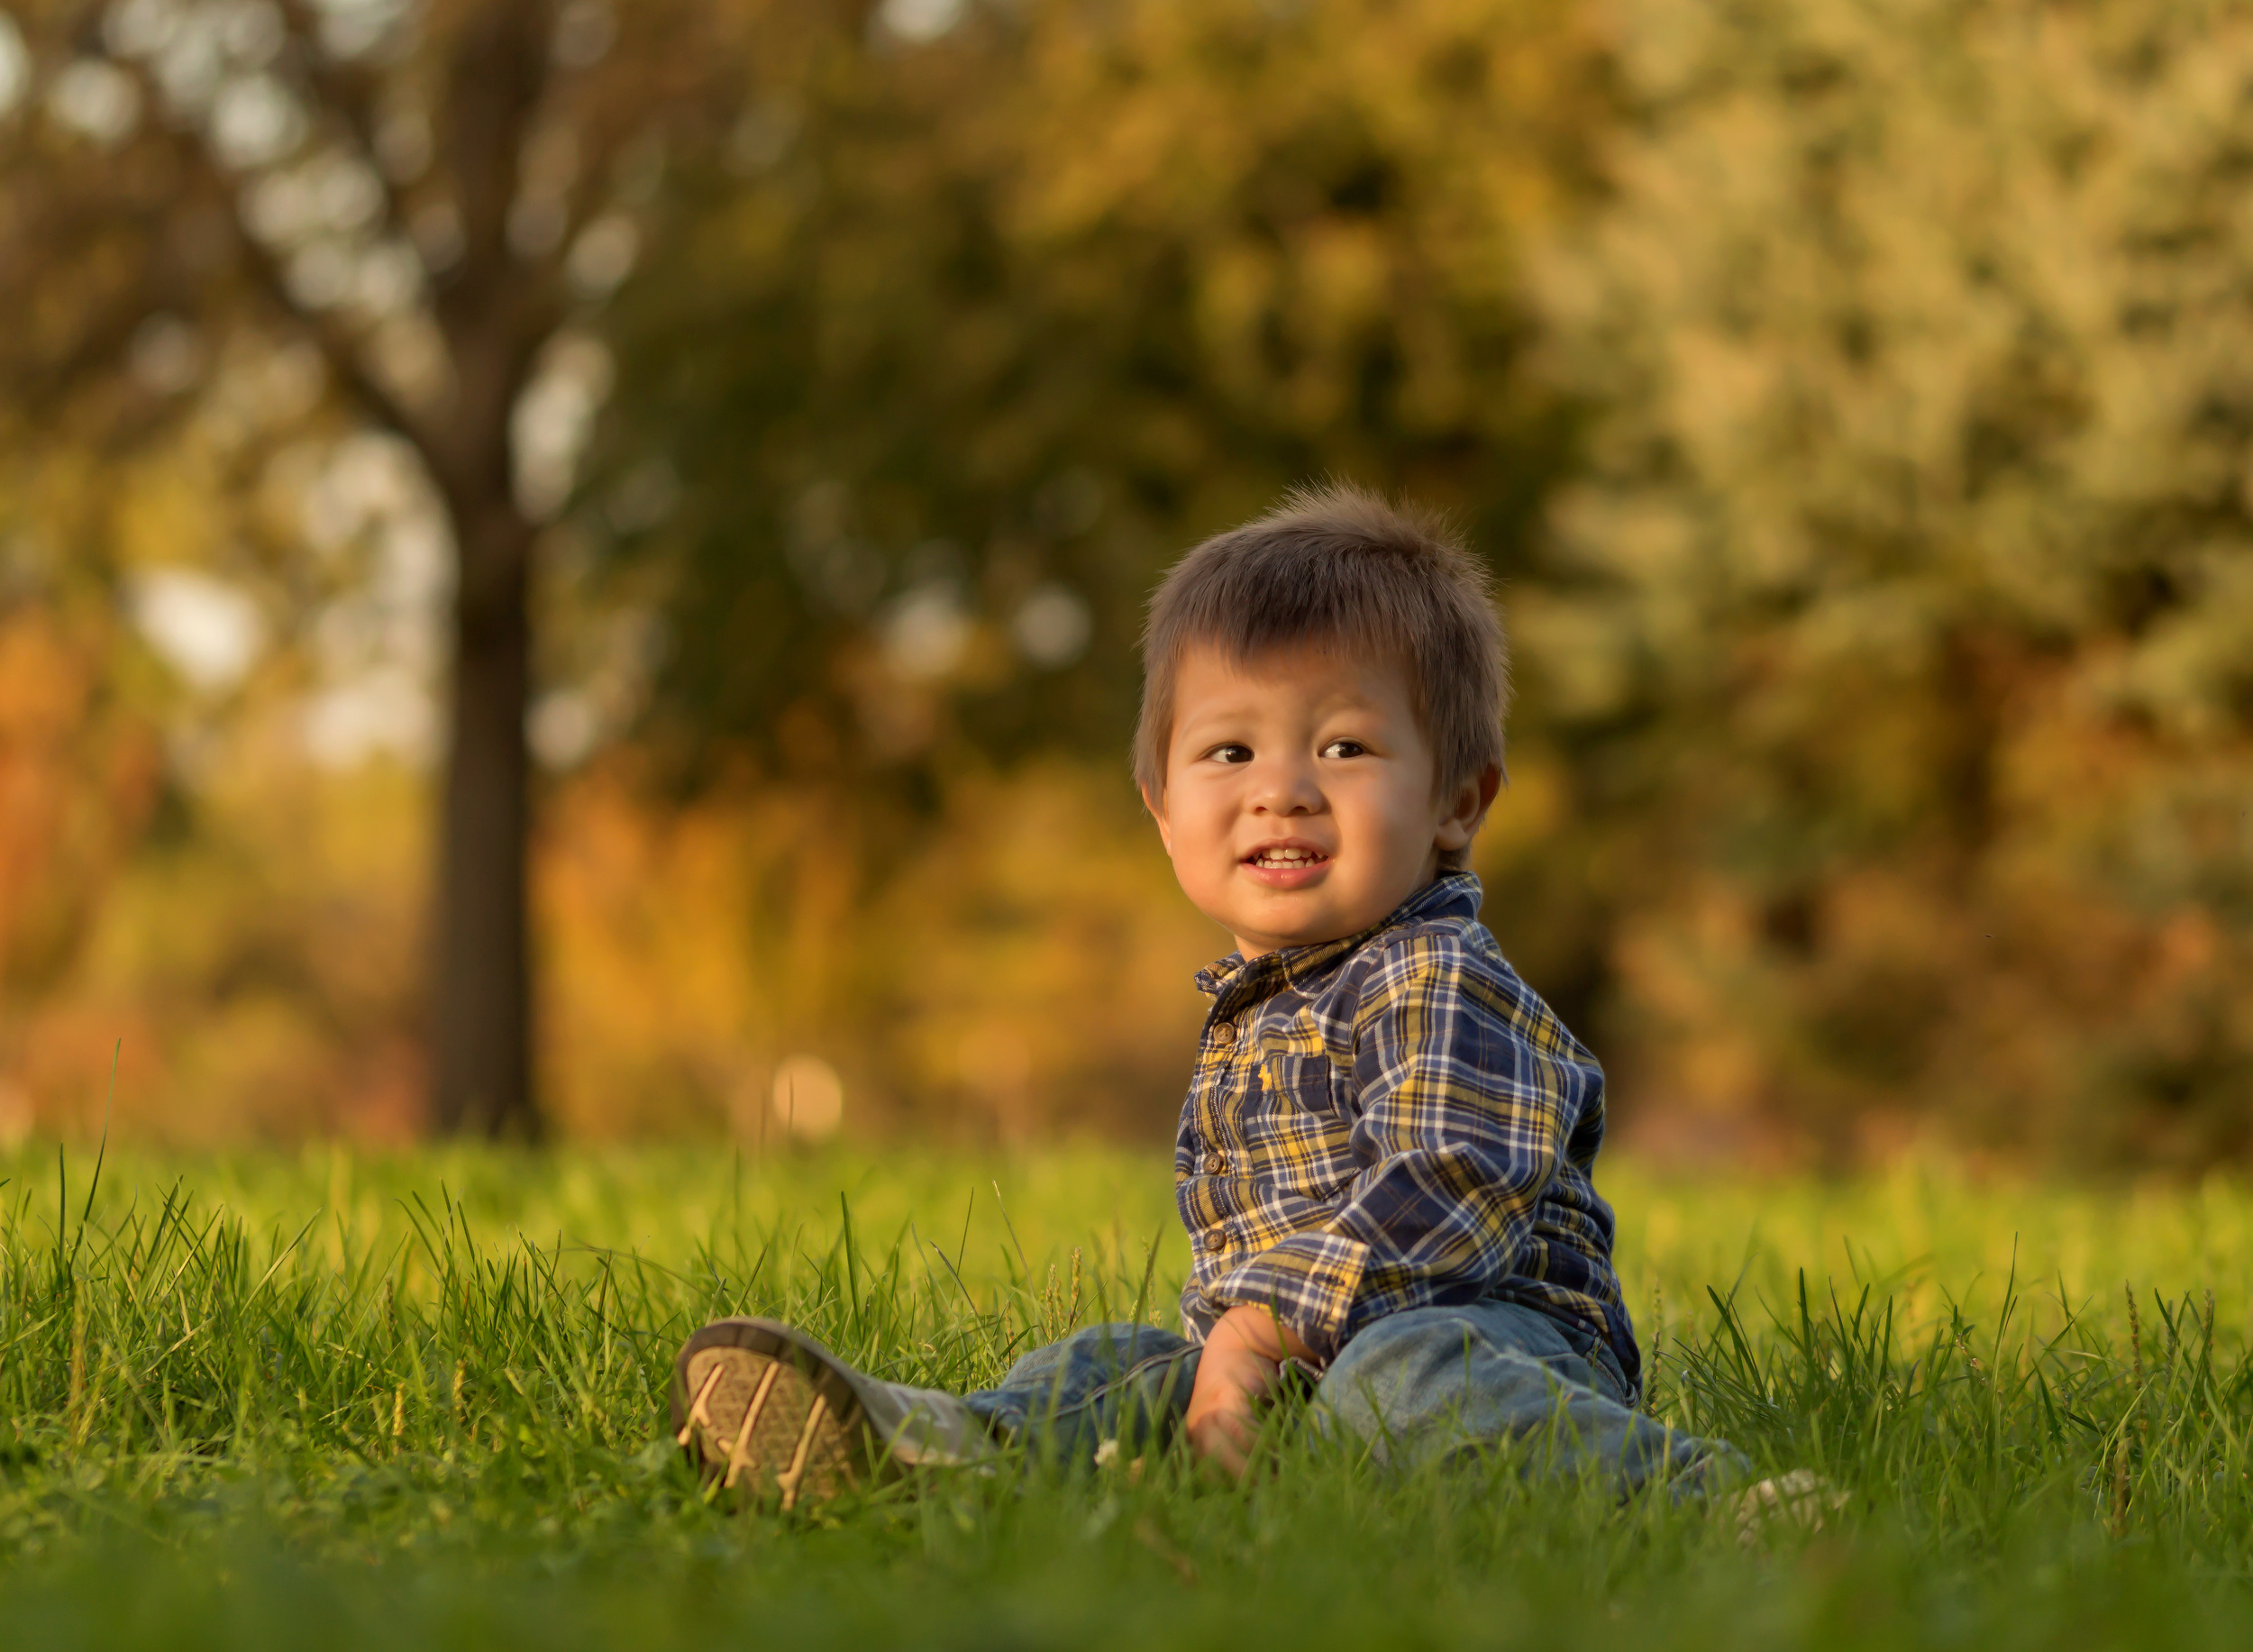 Ankeny Iowa child photography